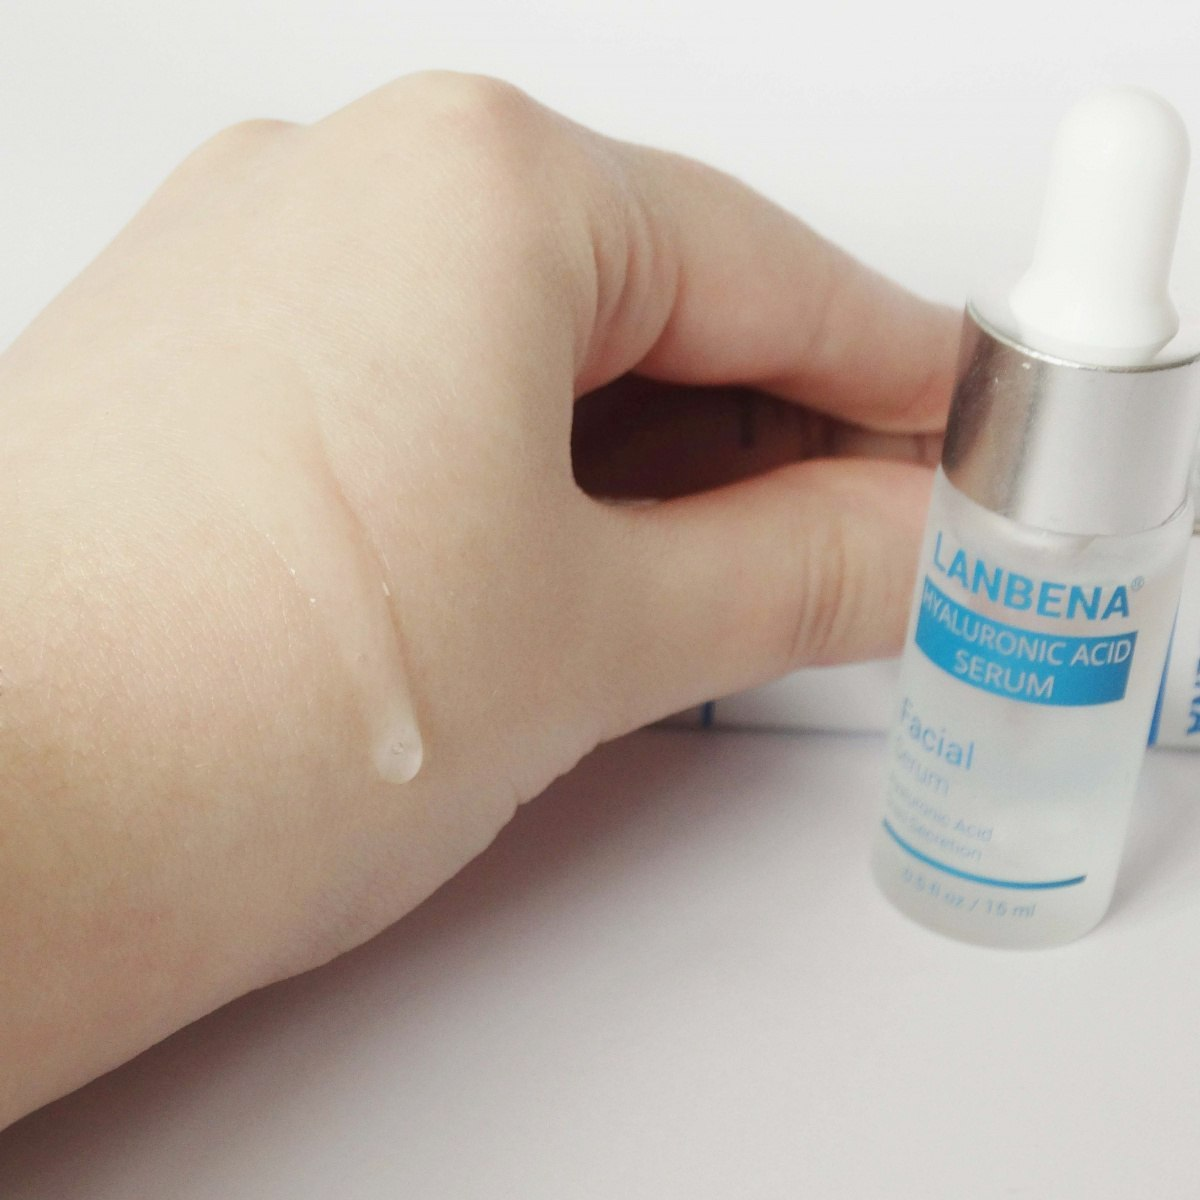 Non-Expensive, and Effective Lanbena Face Serums from Aliexpress - price